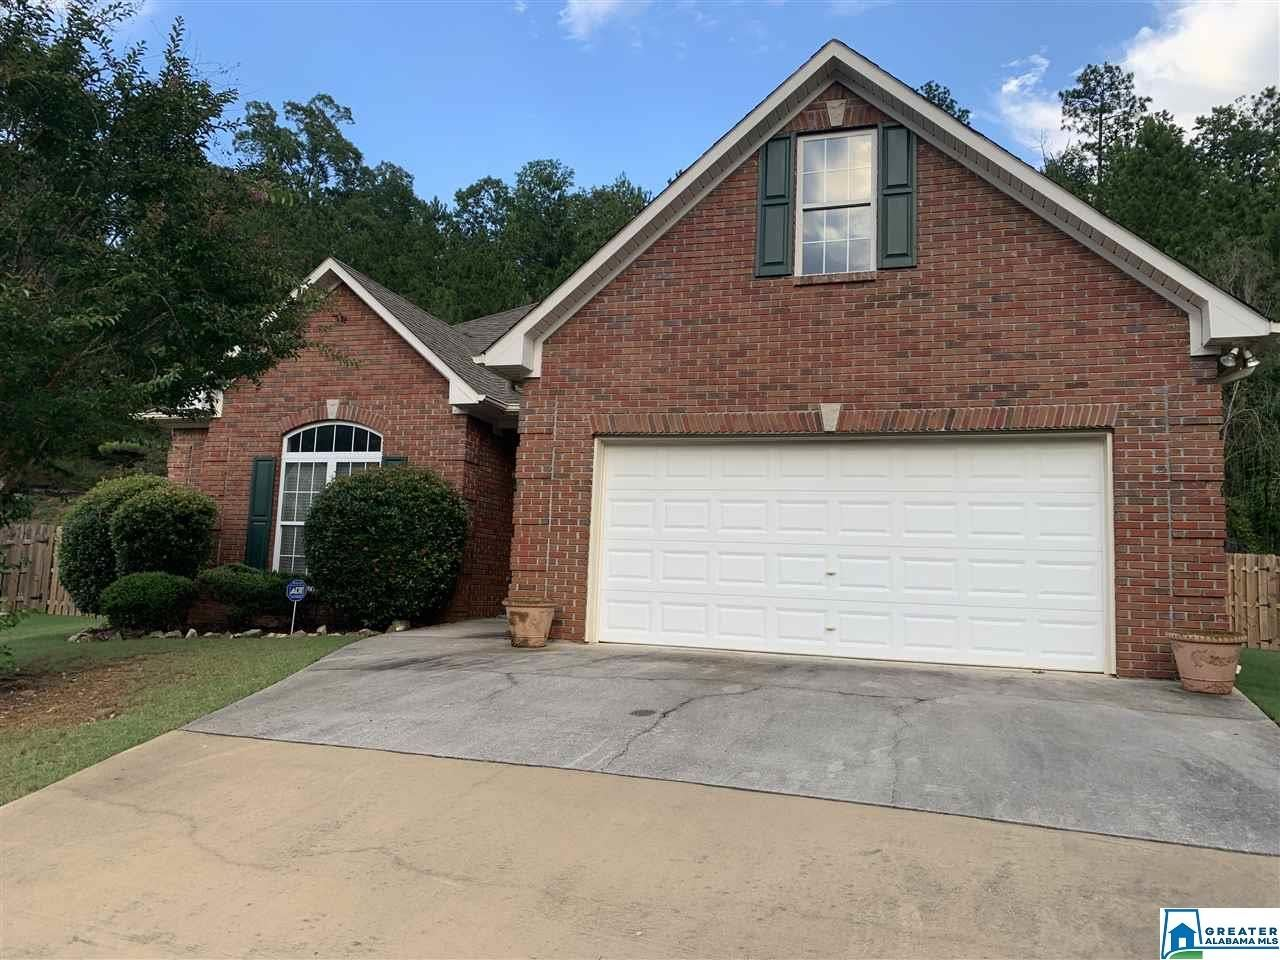 313 COVE CIR, Pelham, AL 35124 - MLS#: 888548